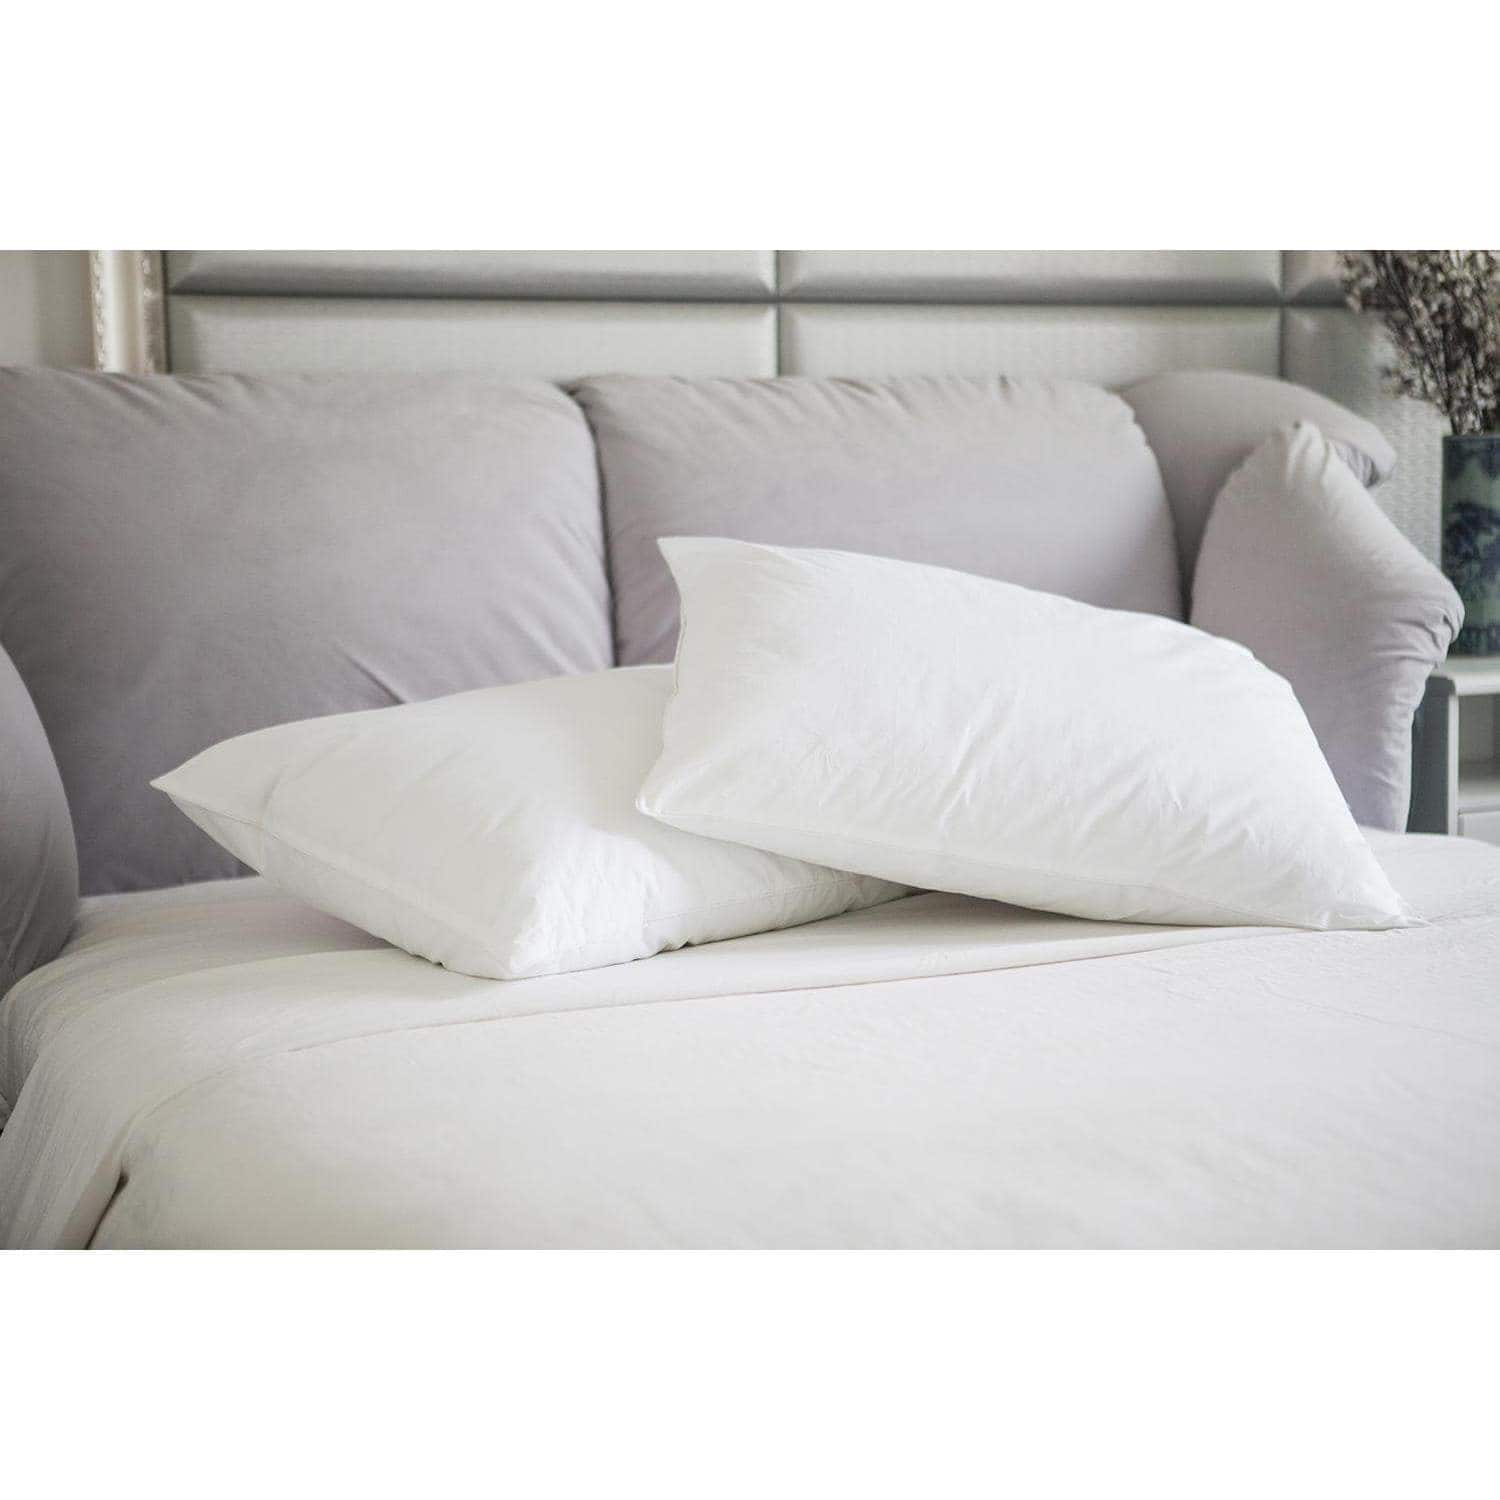 St. James Home Natural Memory White Duck Pillow, White, 2 Pack $10 online at Walmart $9.88